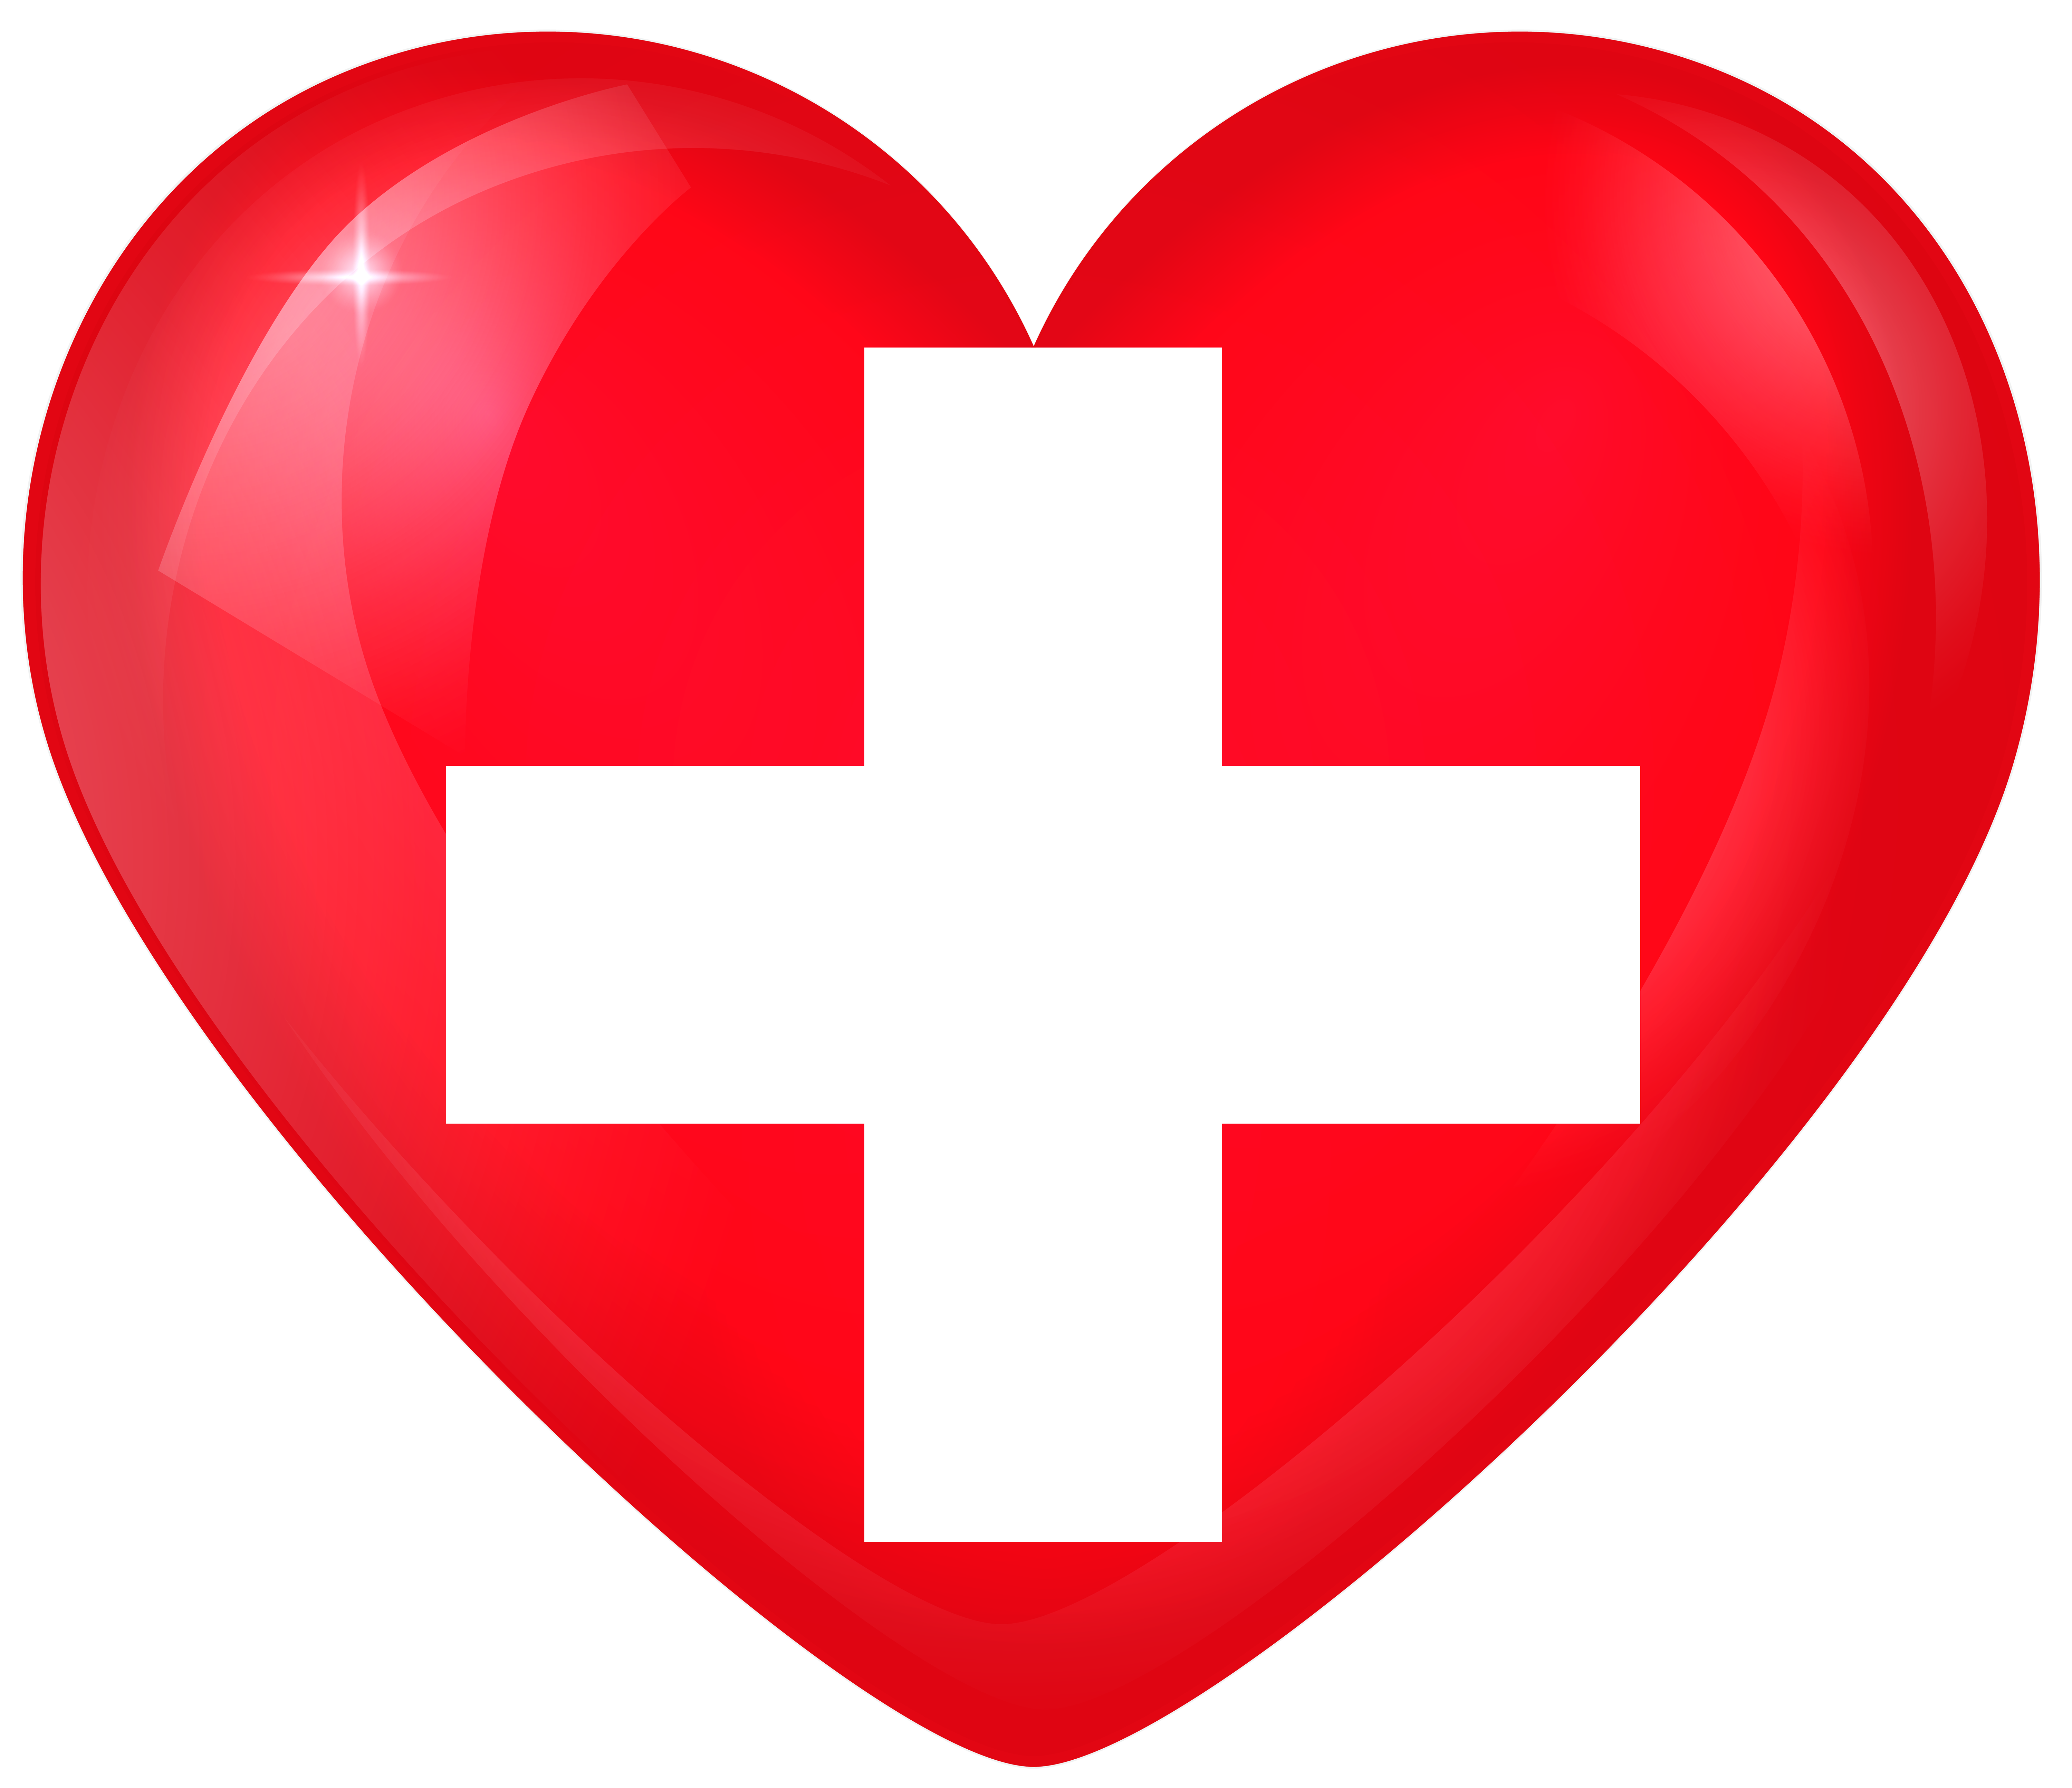 Poppy clipart large. Switzerland heart flag gallery